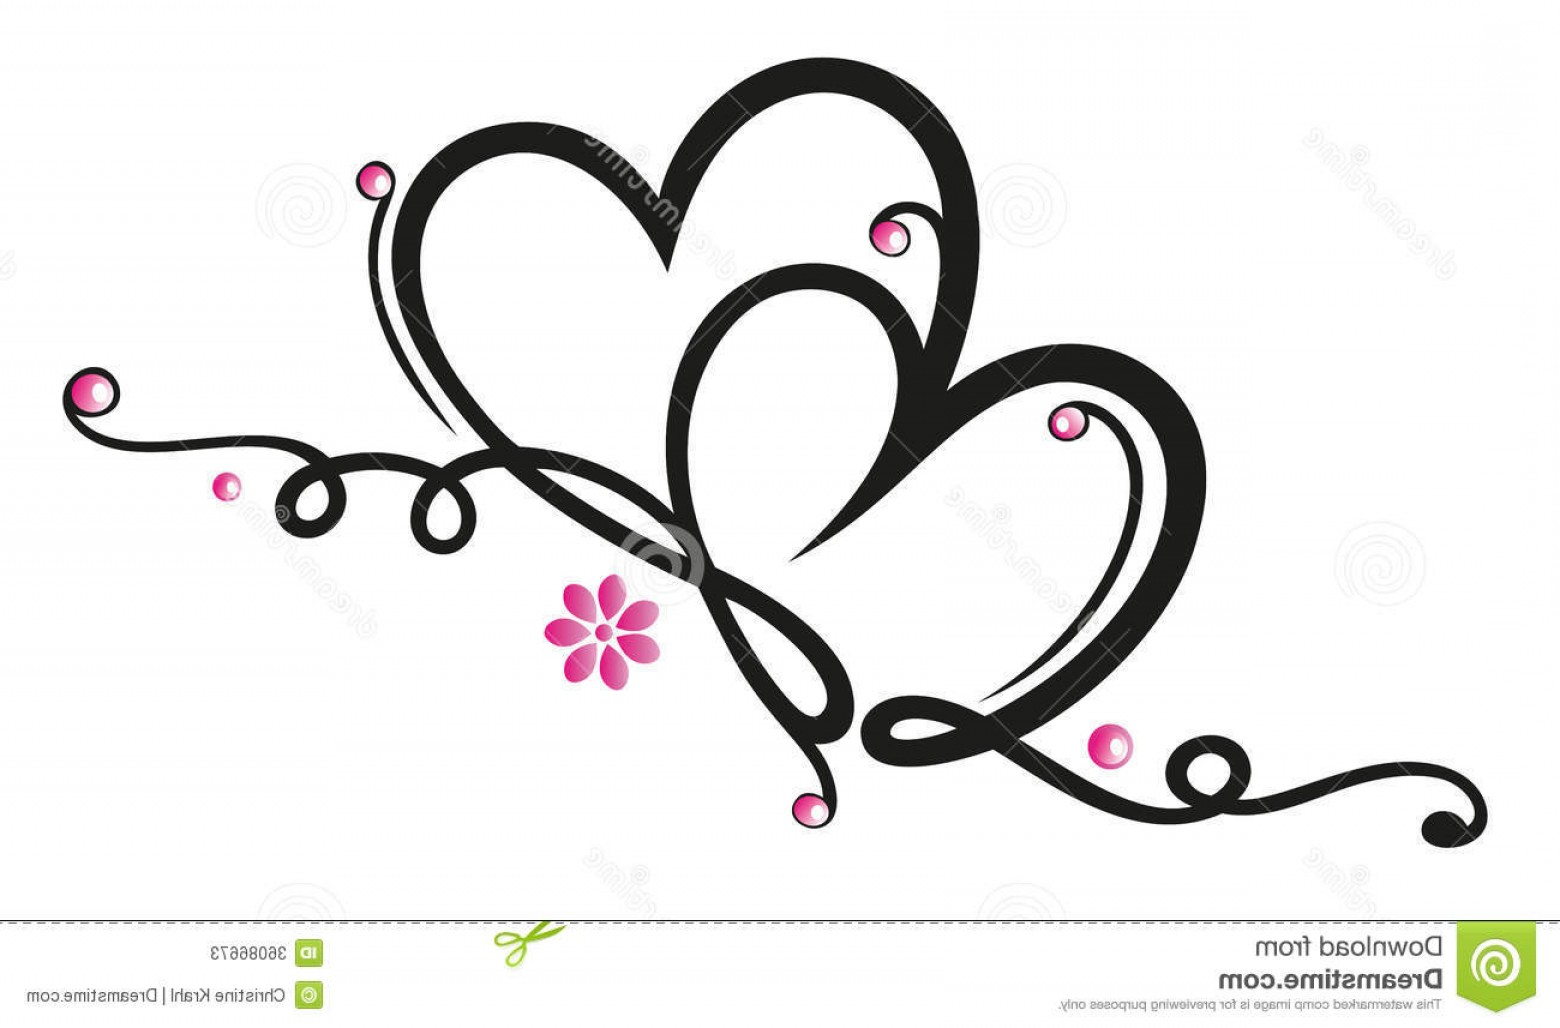 Vector Filigree Heart: Stock Photos Hearts Flowers Filigree Border Valentines Day Decoration Image